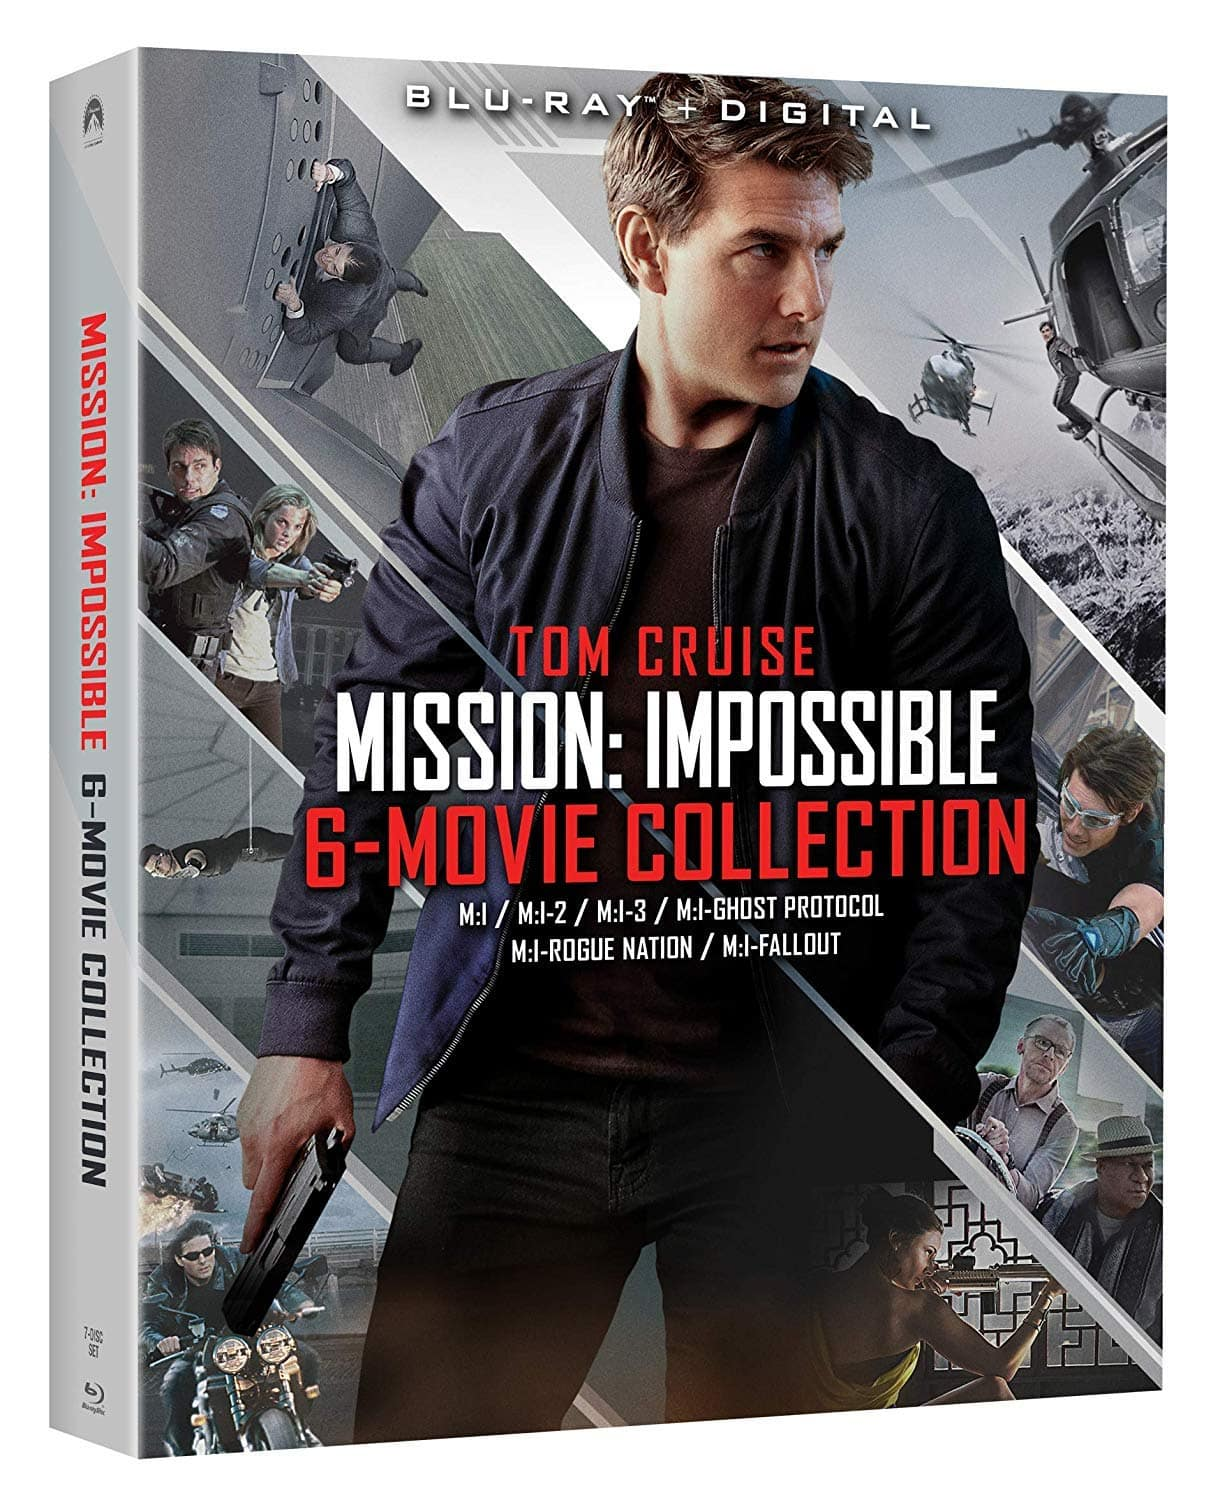 Mission: Impossible 6-Movie Collection (Blu-ray + Digital HD) $12.99 via Amazon